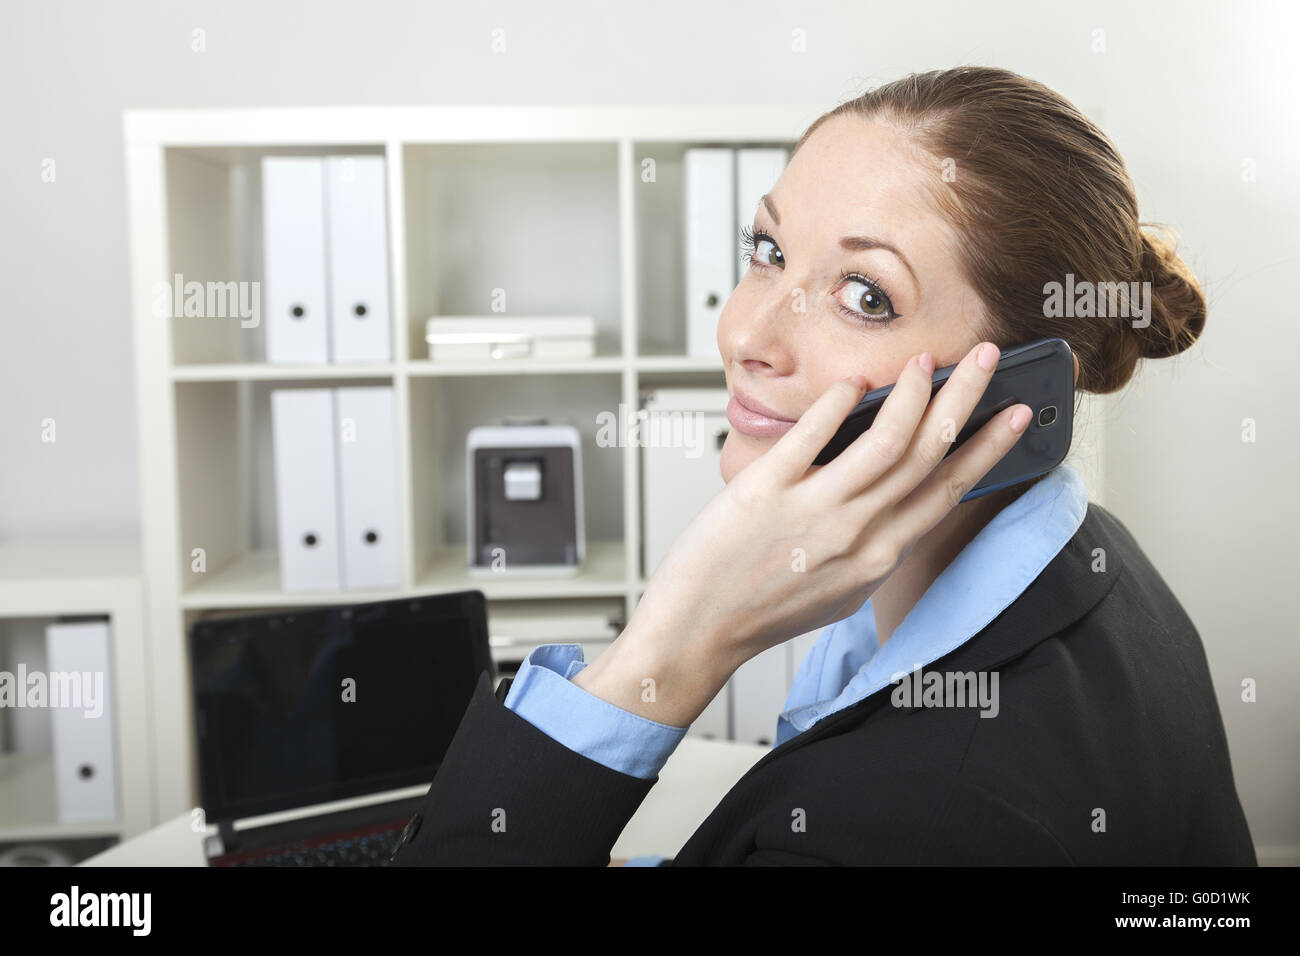 Businesswoman has a call - Stock Image